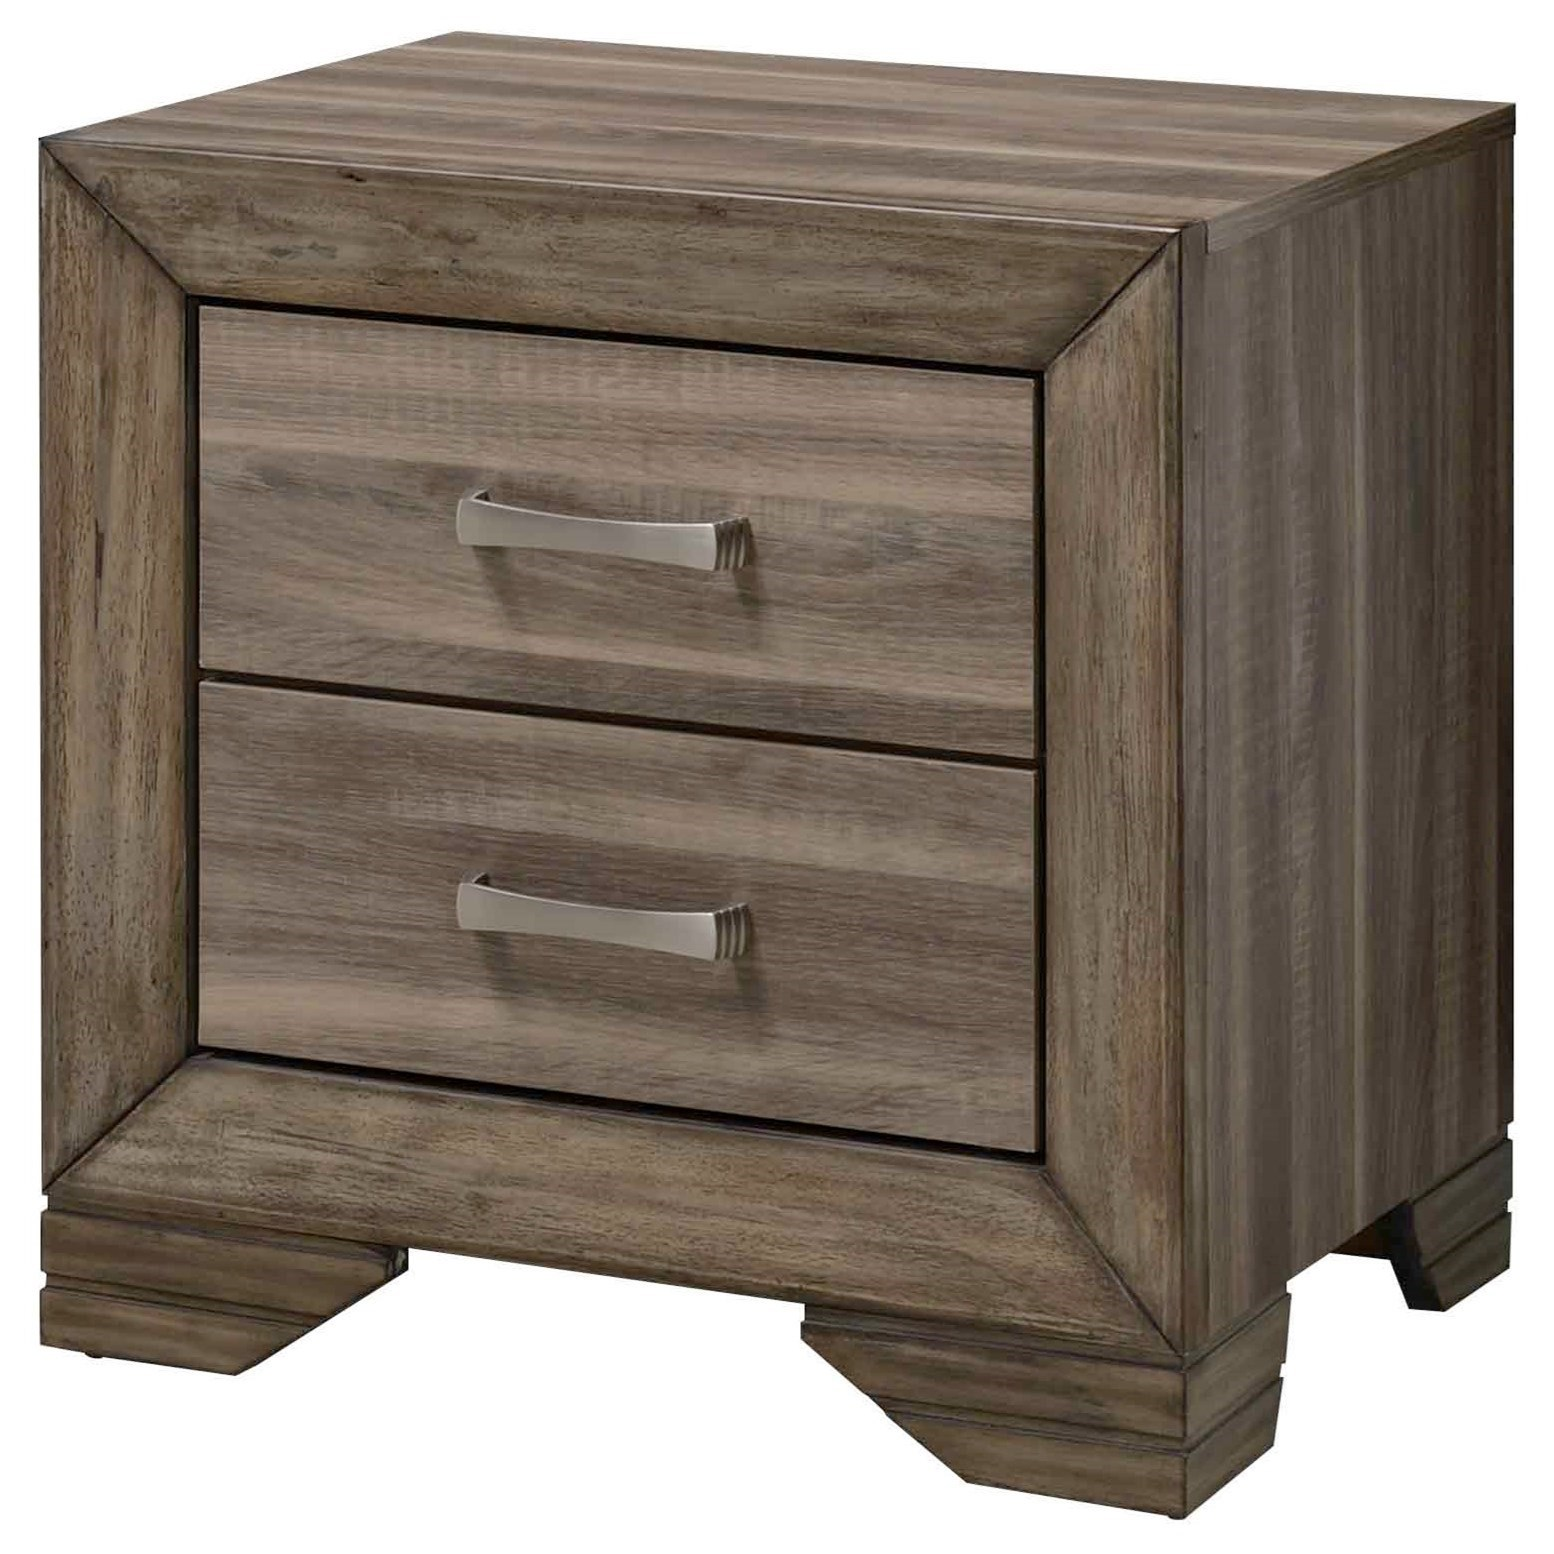 Bernards Asheville Nightstand - Item Number: 1652